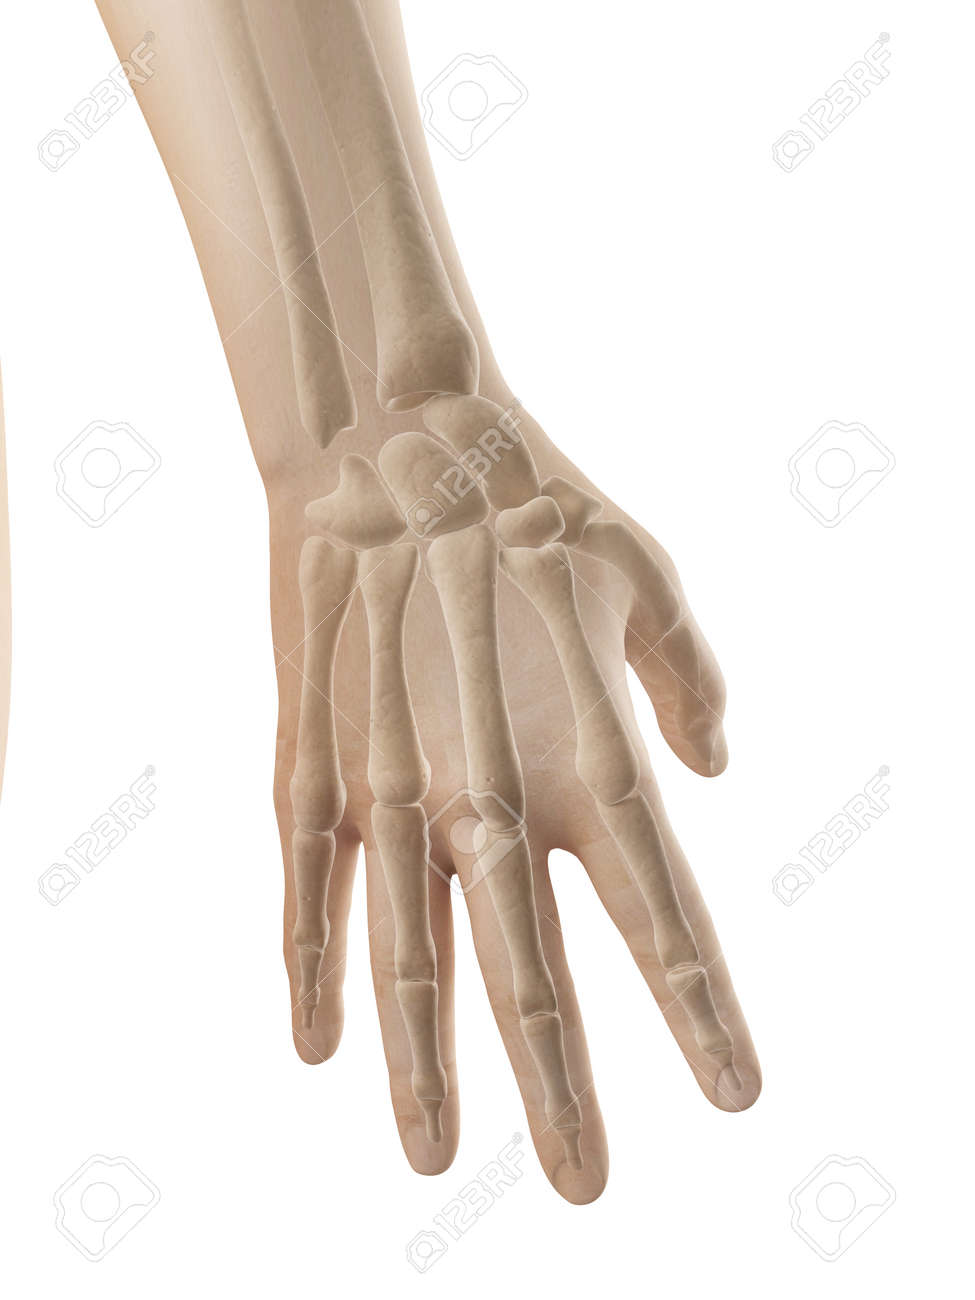 Hand Anatomy - Bones Of Hand And Fingers Stock Photo, Picture And ...